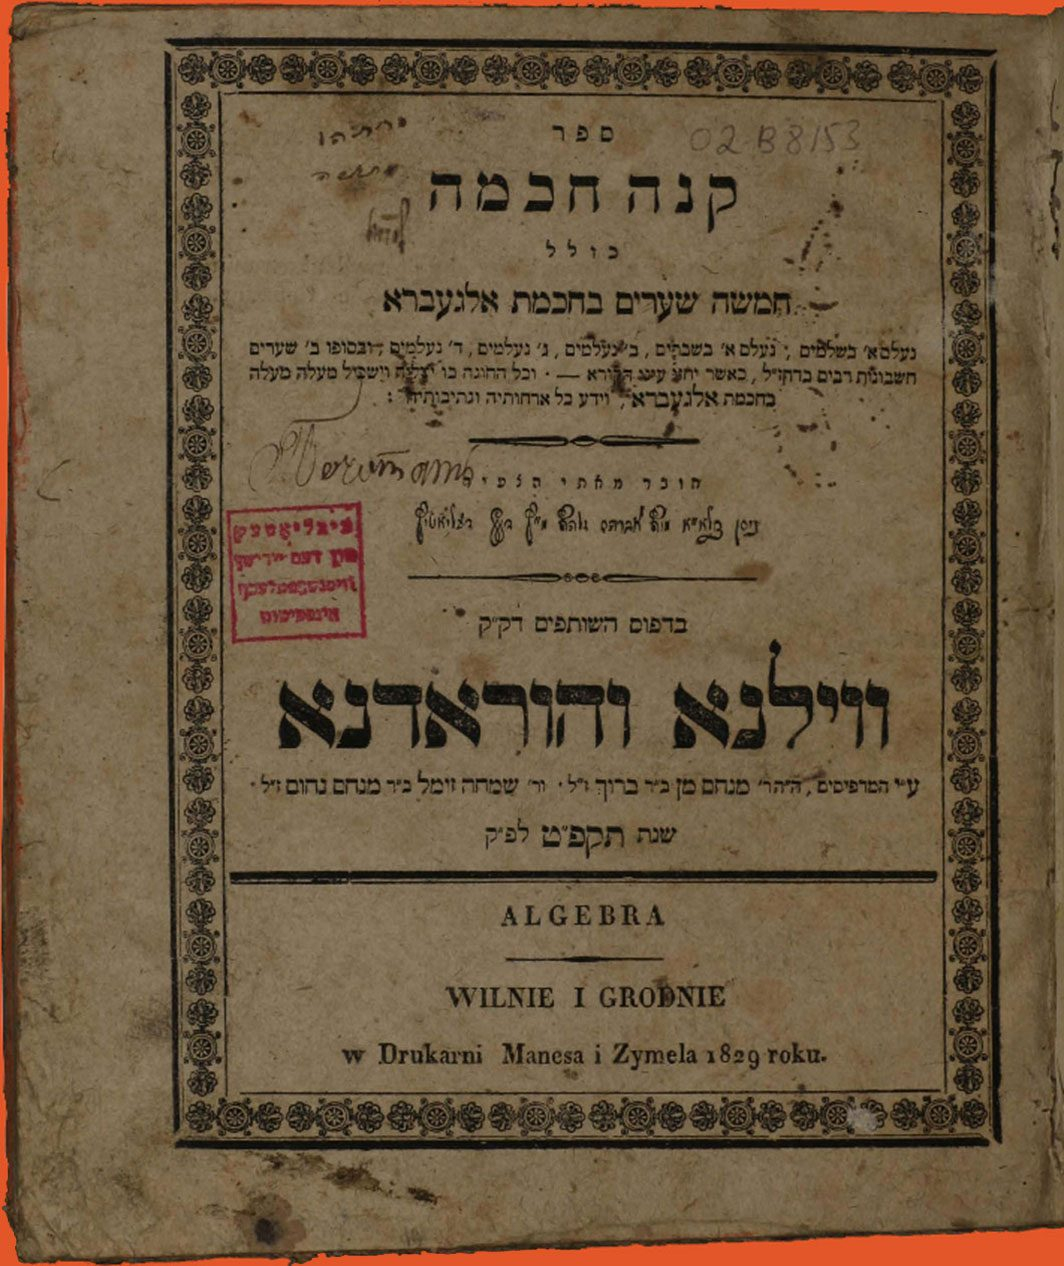 Cover page of an algebra book